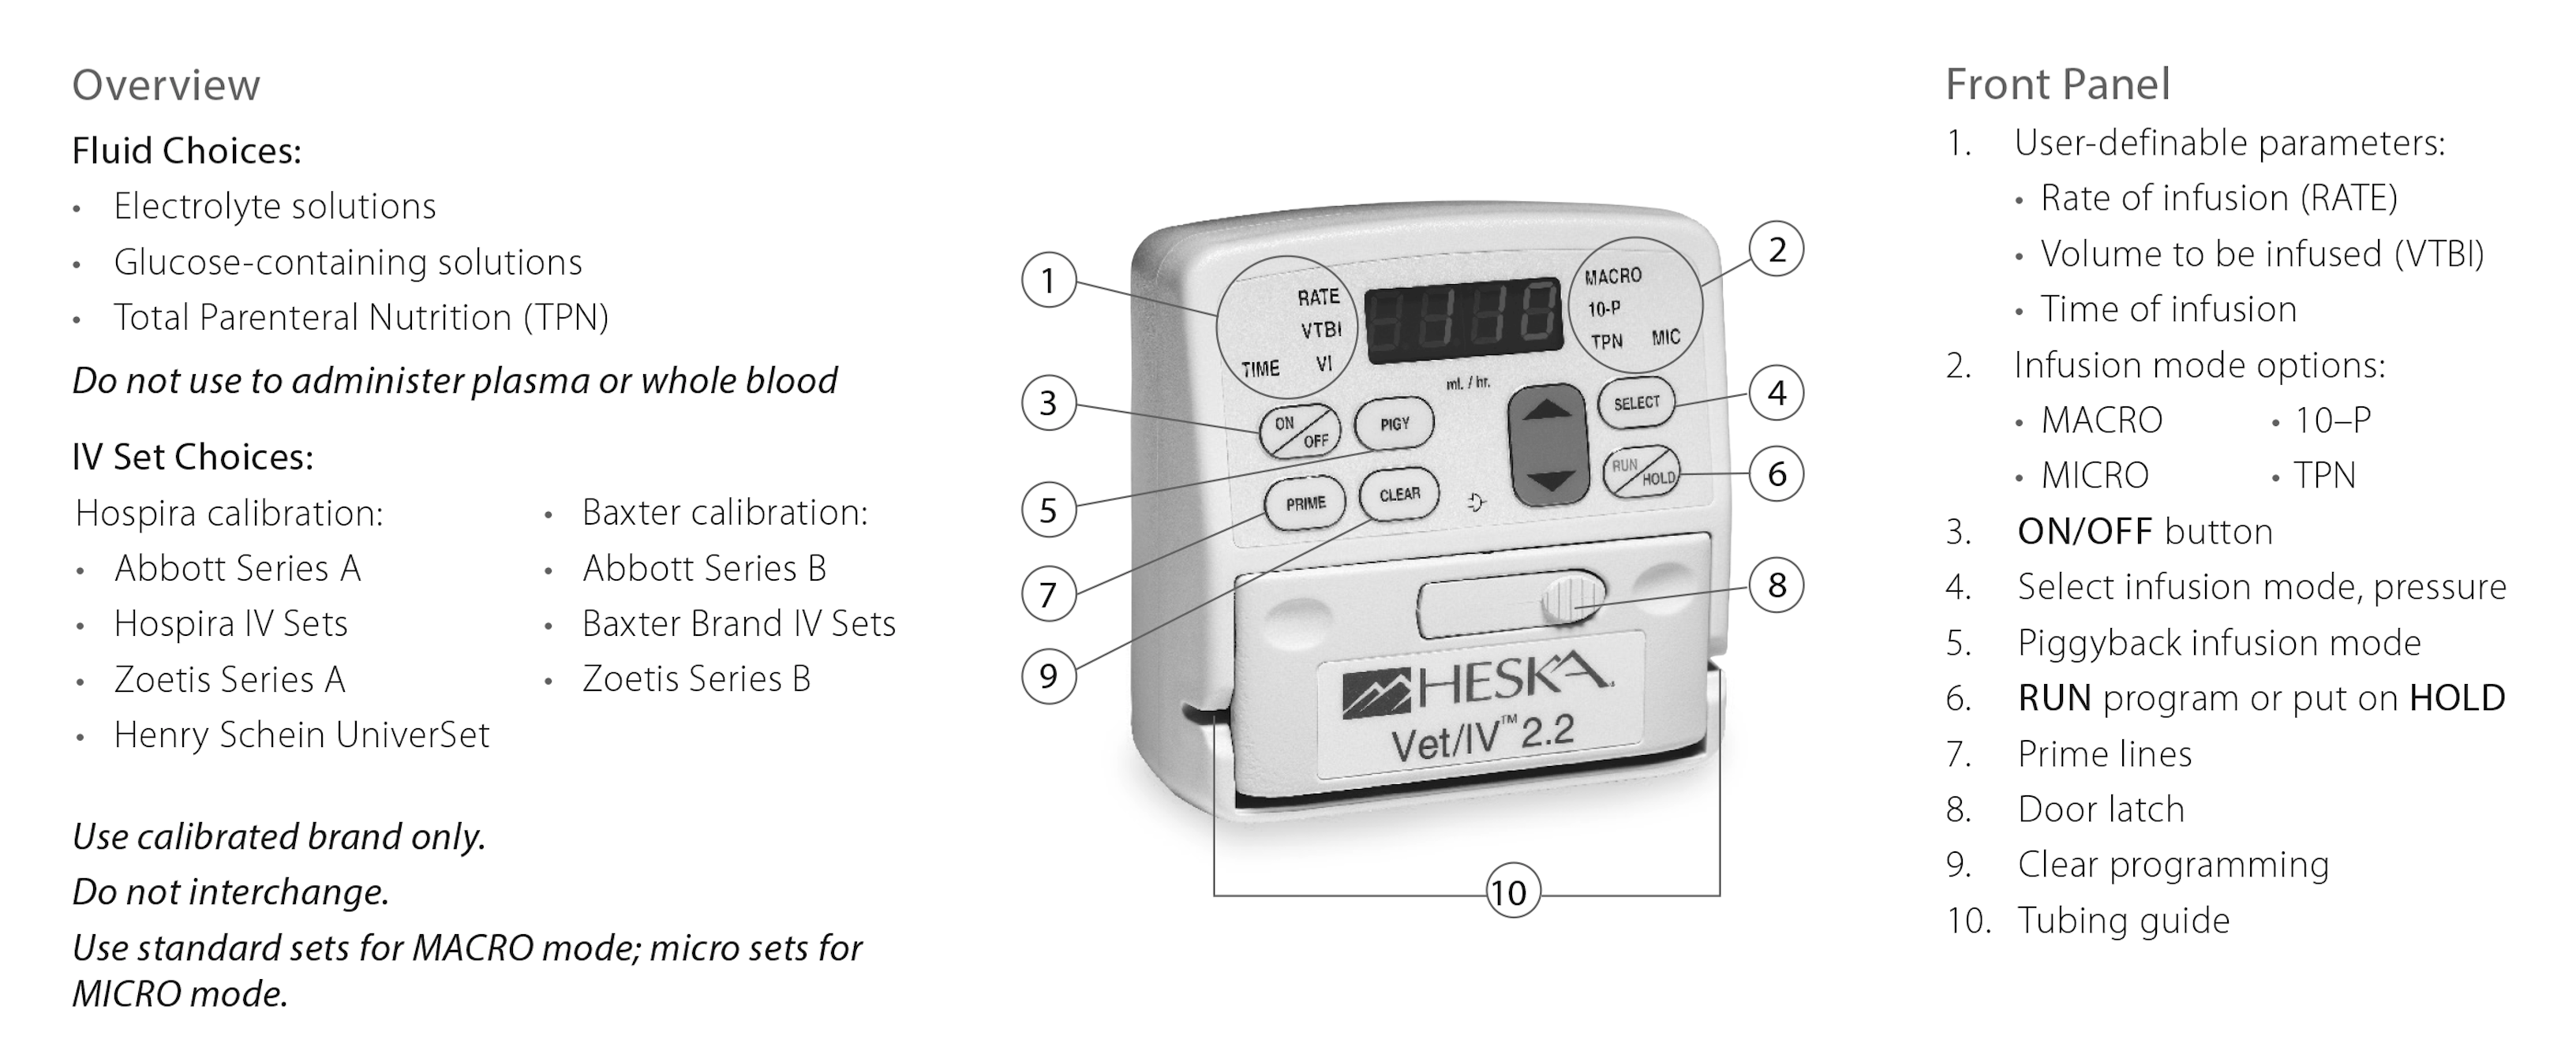 Vet/IV 2.2 Infusion Pump Diagram